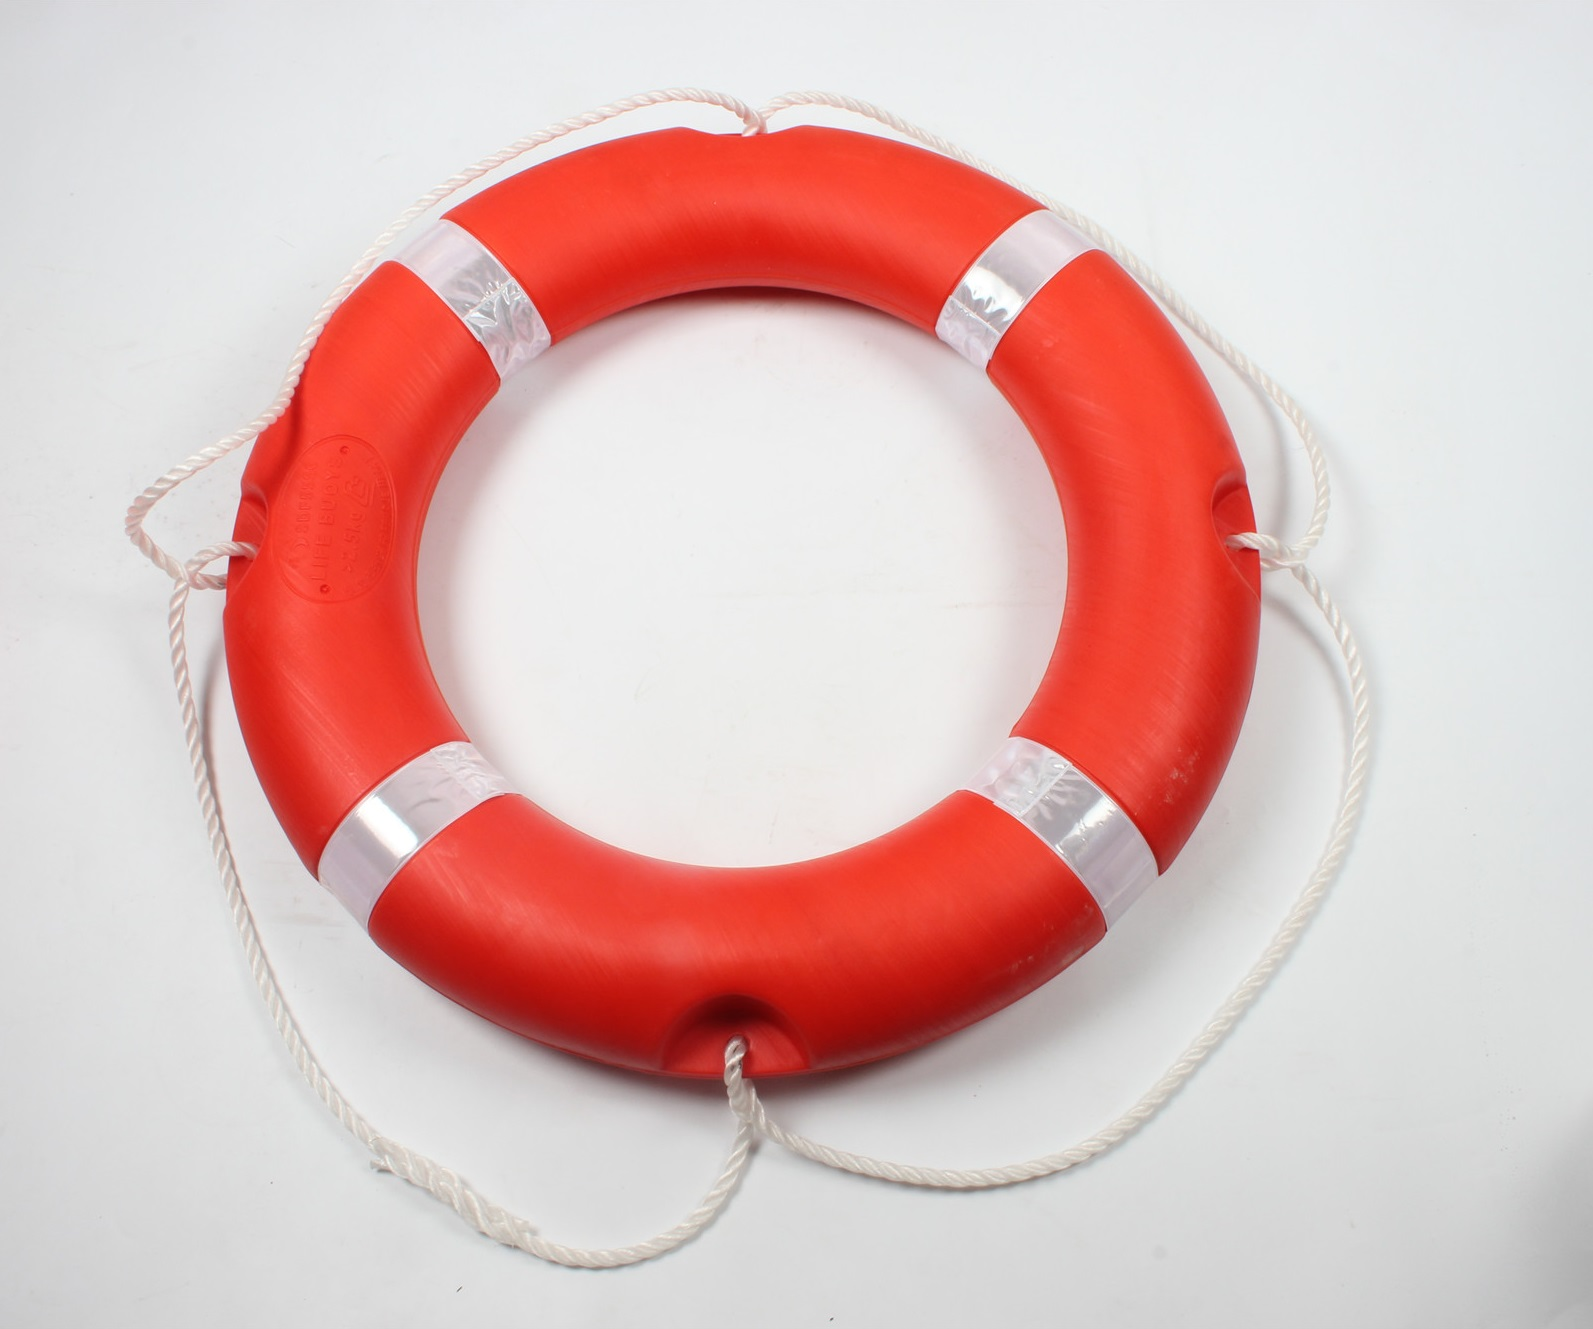 Solas Approved Life Buoy ring 2.5KG